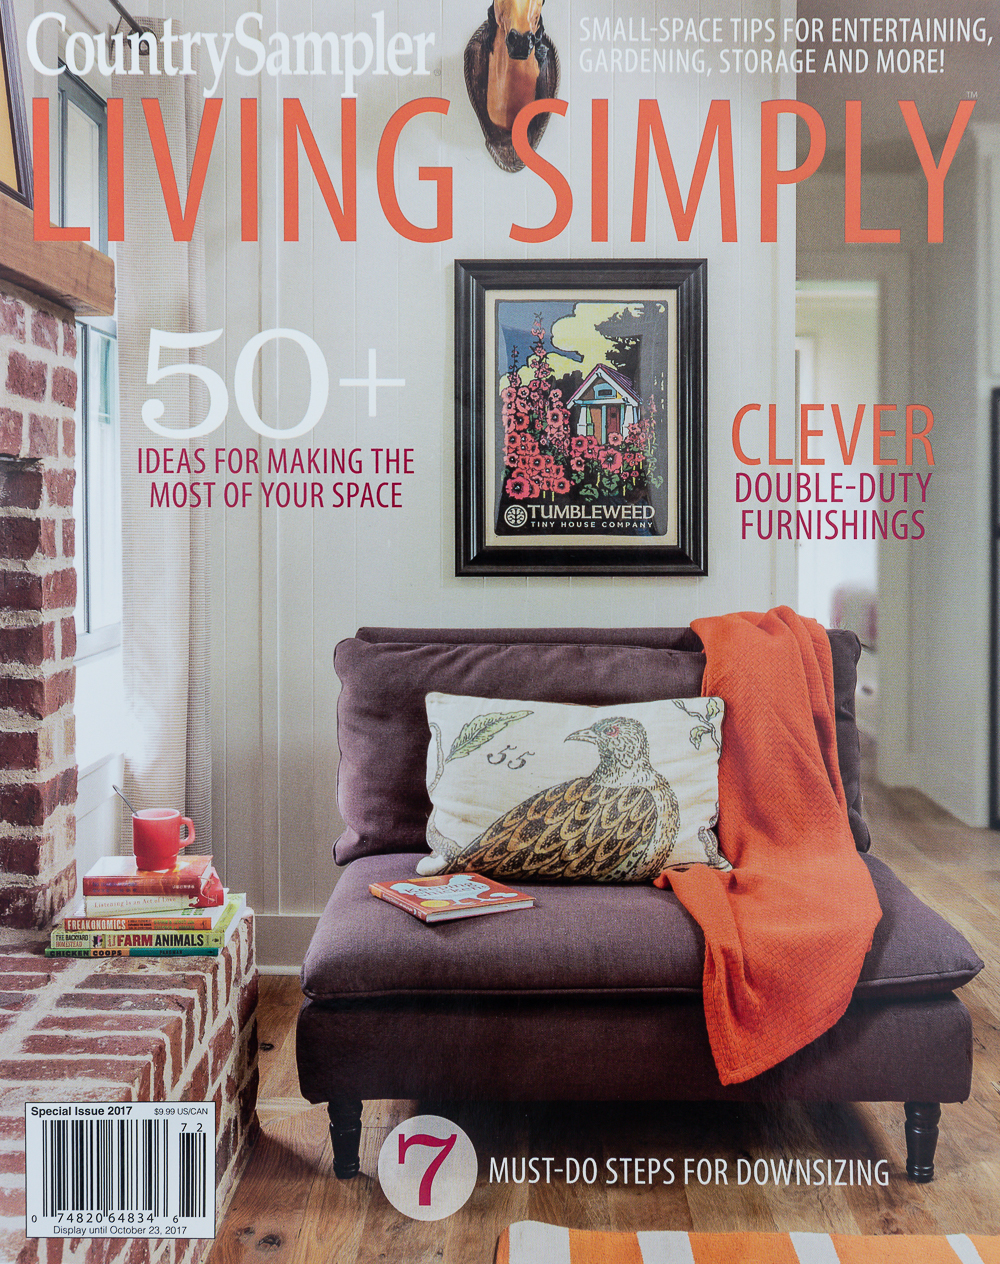 Country Sampler - Living Simply - Sept 2017